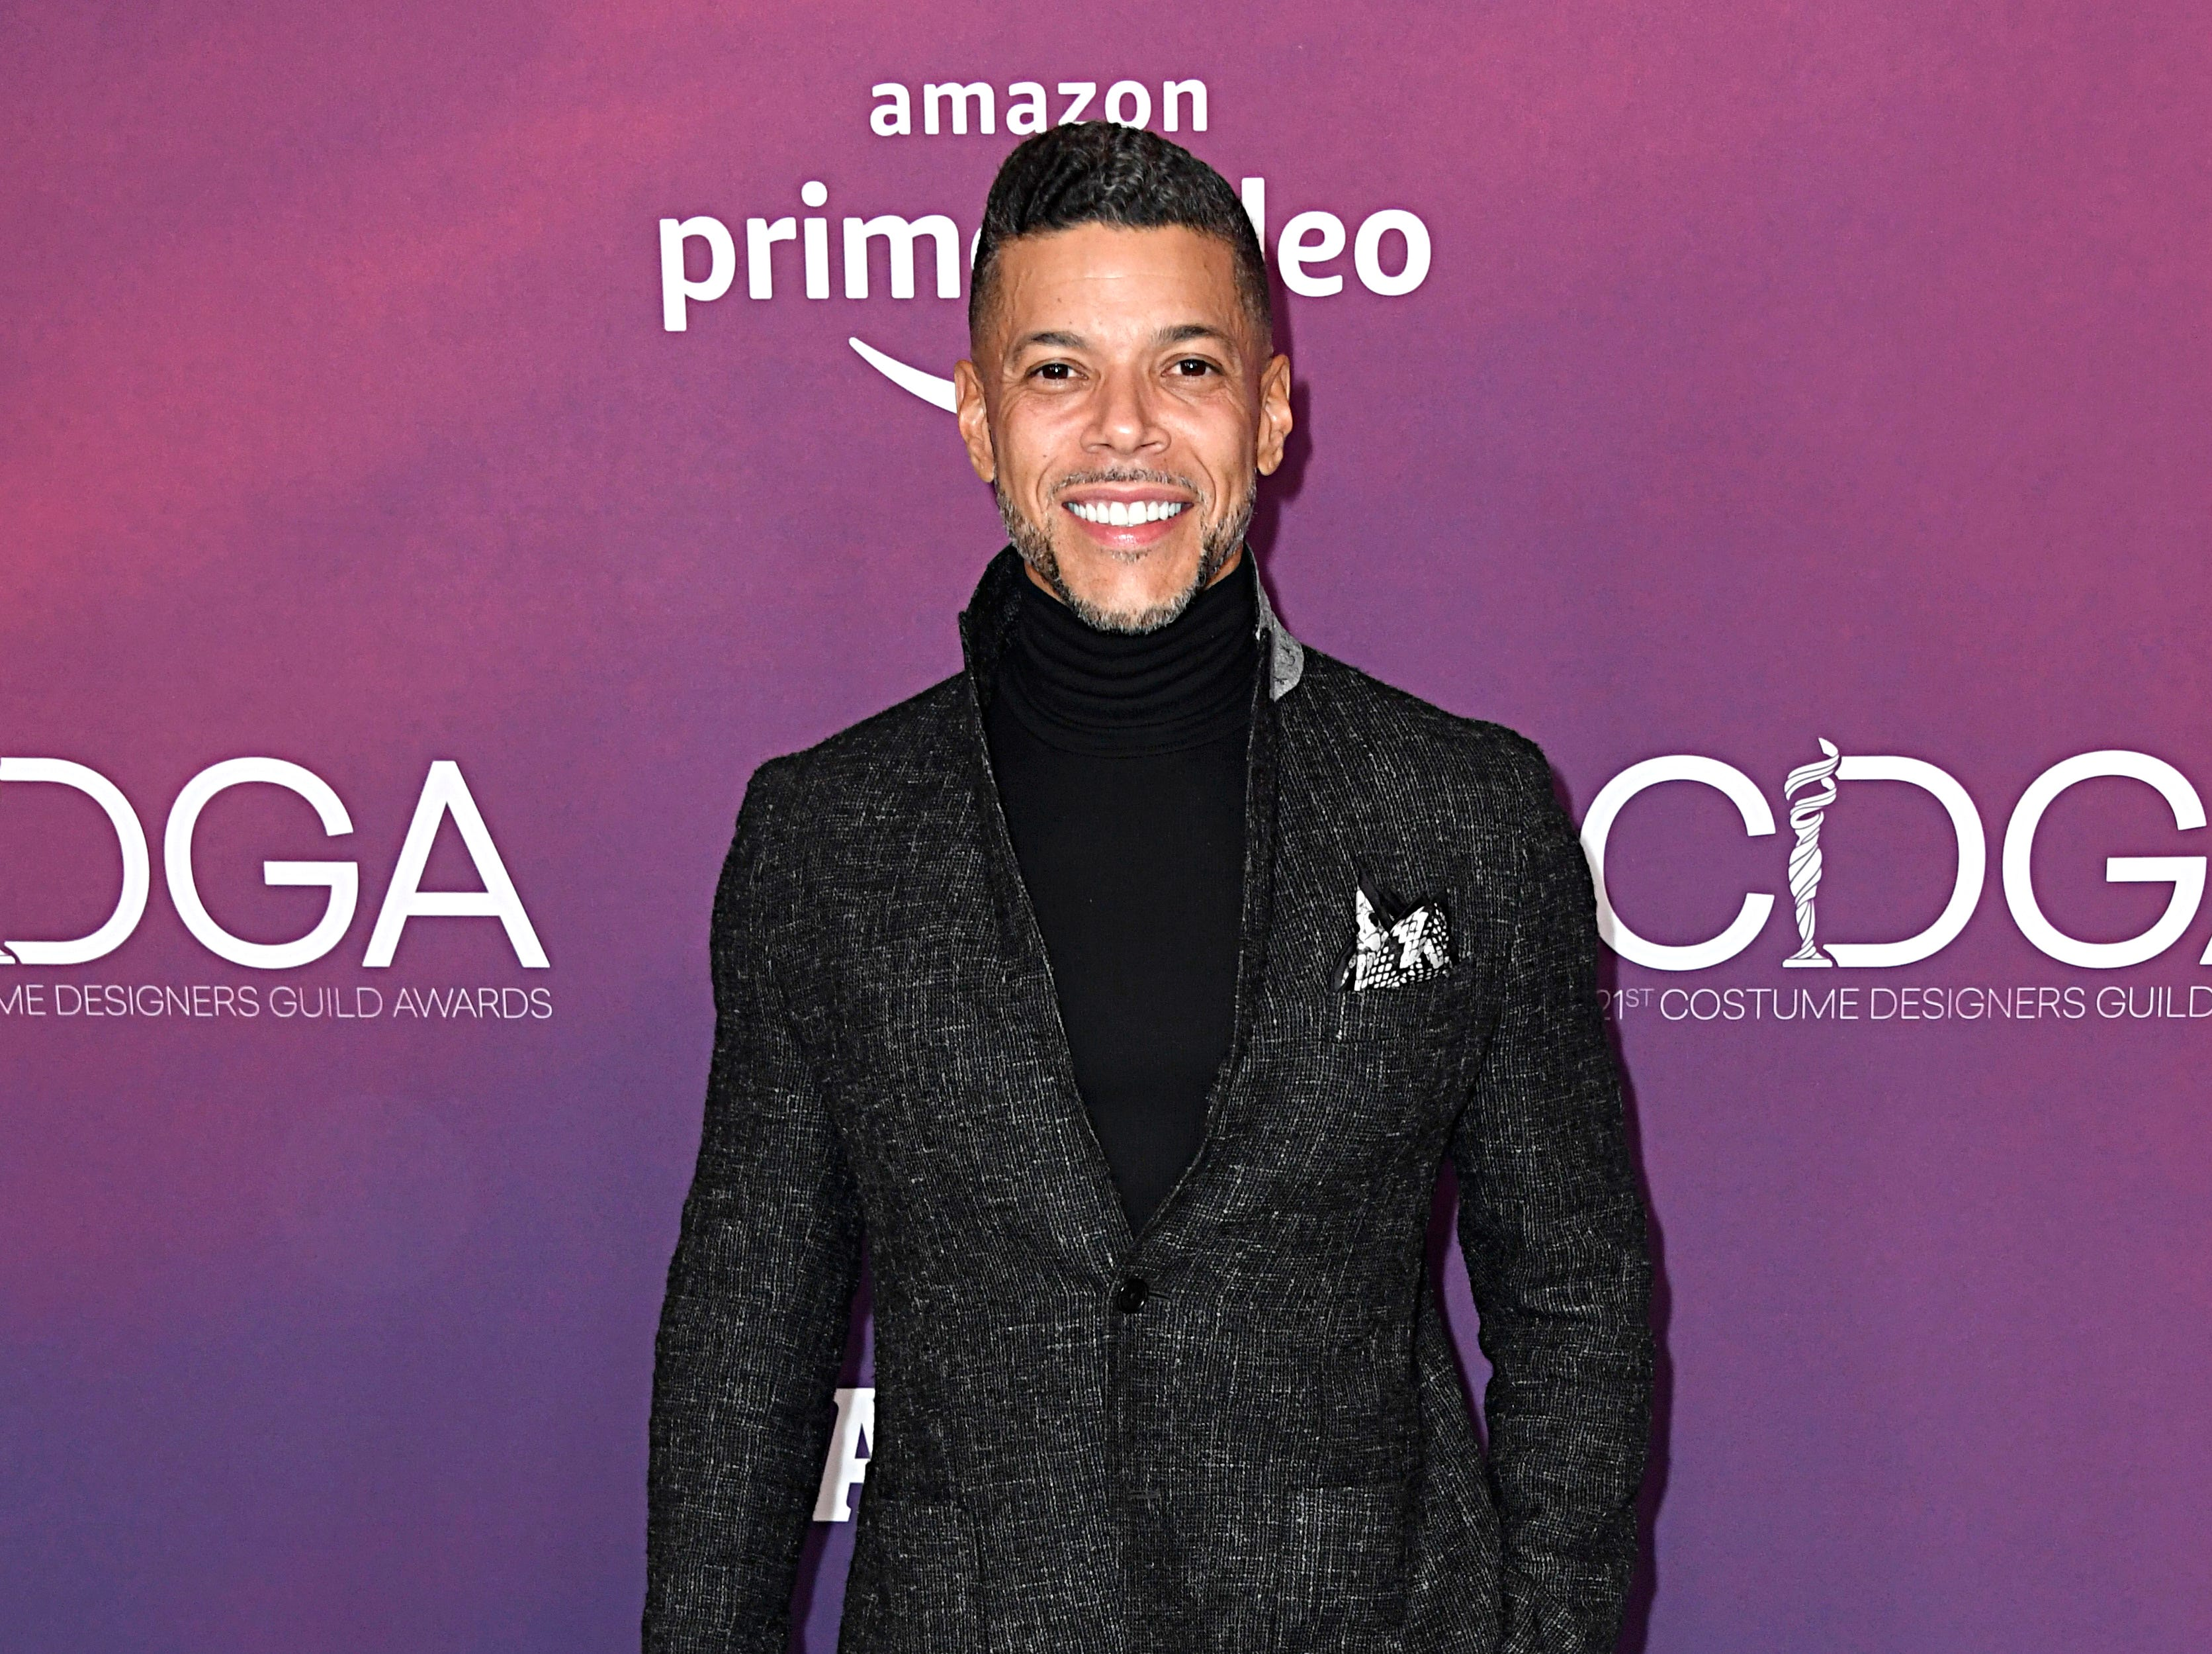 BEVERLY HILLS, CALIFORNIA - FEBRUARY 19: Wilson Cruz attends The 21st CDGA (Costume Designers Guild Awards) at The Beverly Hilton Hotel on February 19, 2019 in Beverly Hills, California. (Photo by Frazer Harrison/Getty Images) ORG XMIT: 775282683 ORIG FILE ID: 1130828486